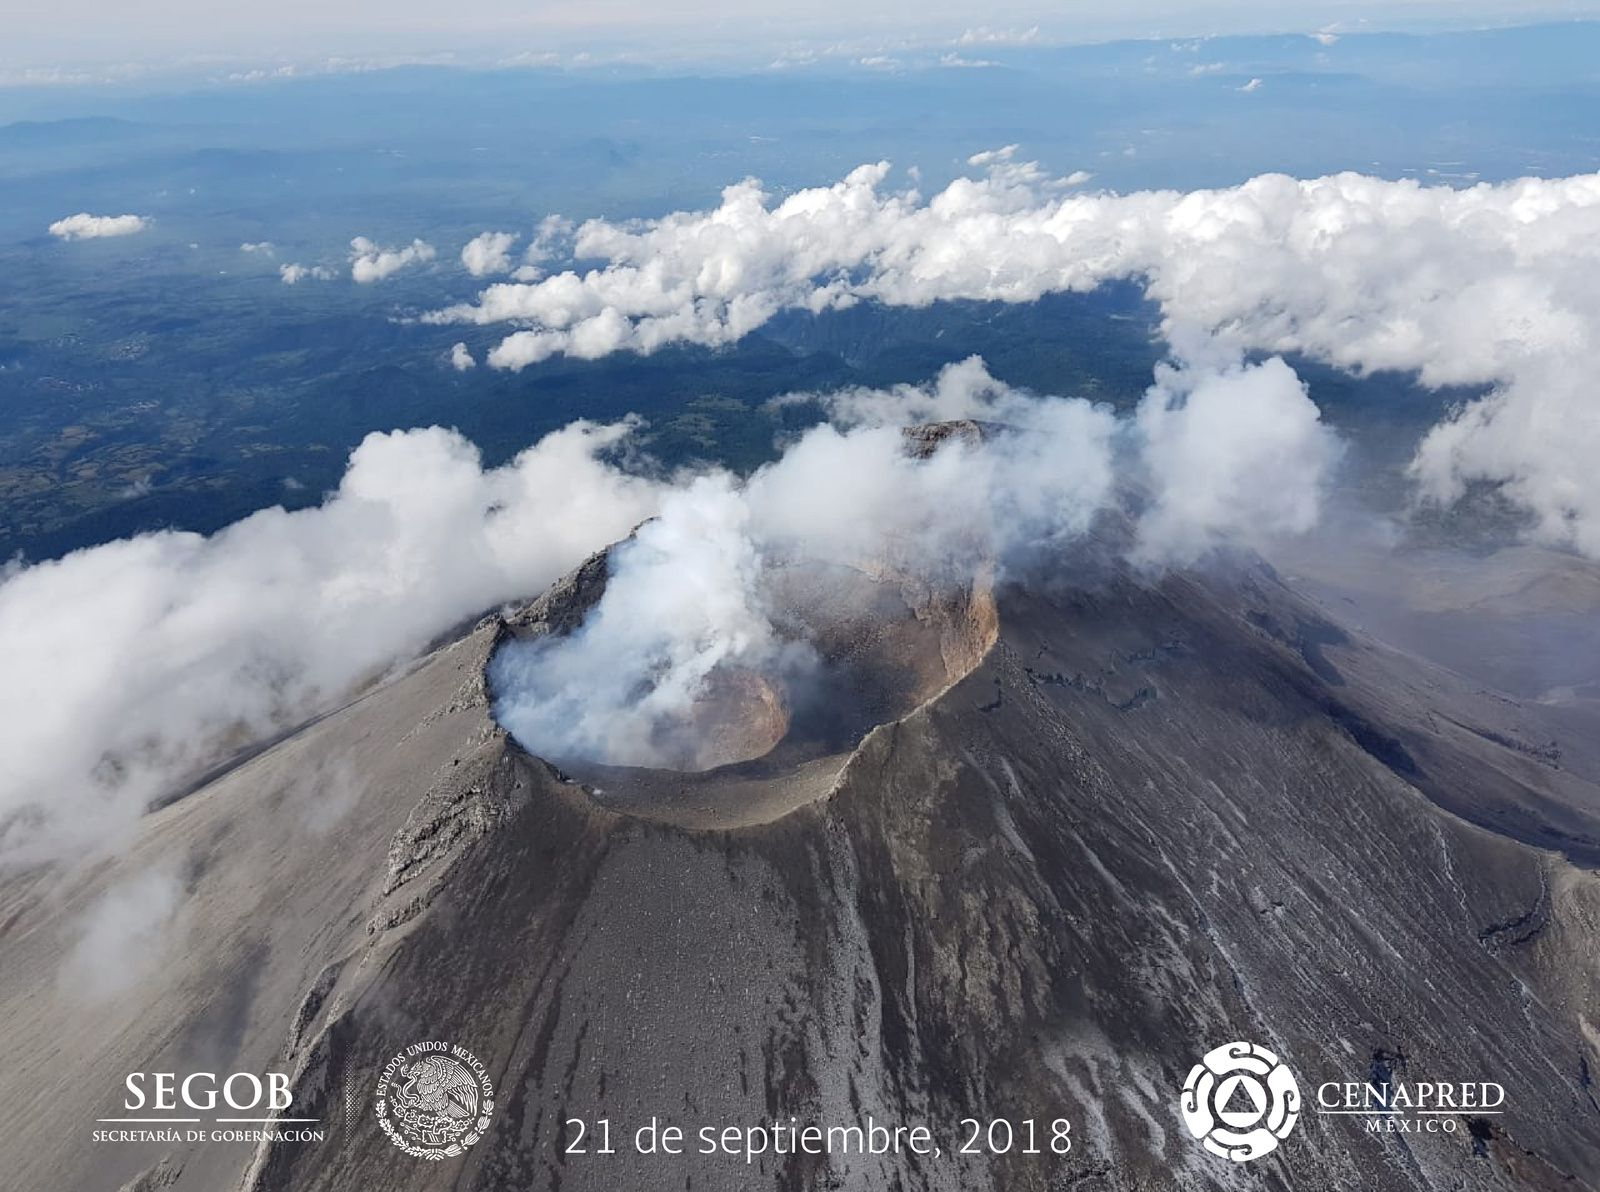 Popocatépetl - overview of 21.09.2018 with the support of the Federal Police - photo Cenapred